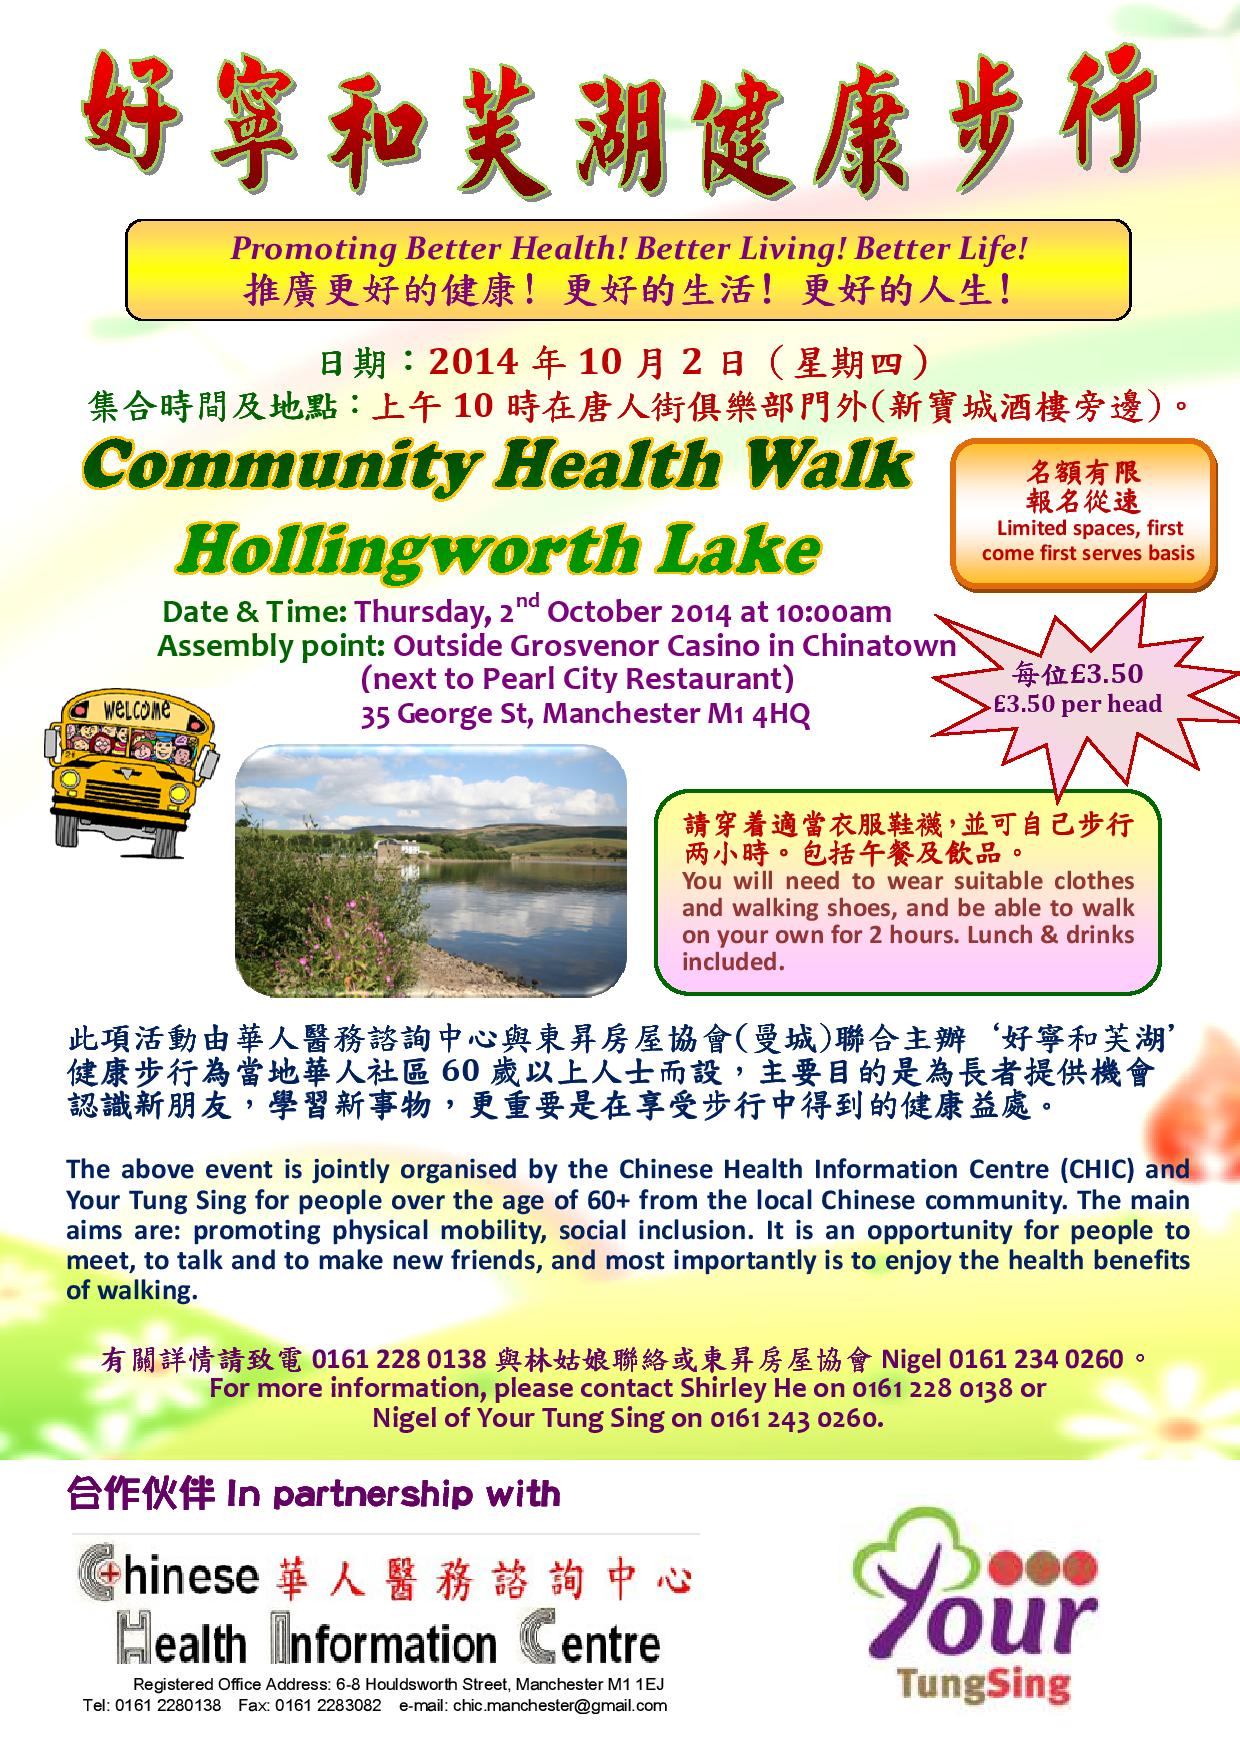 Community Health Walk - Hollingworth Lake